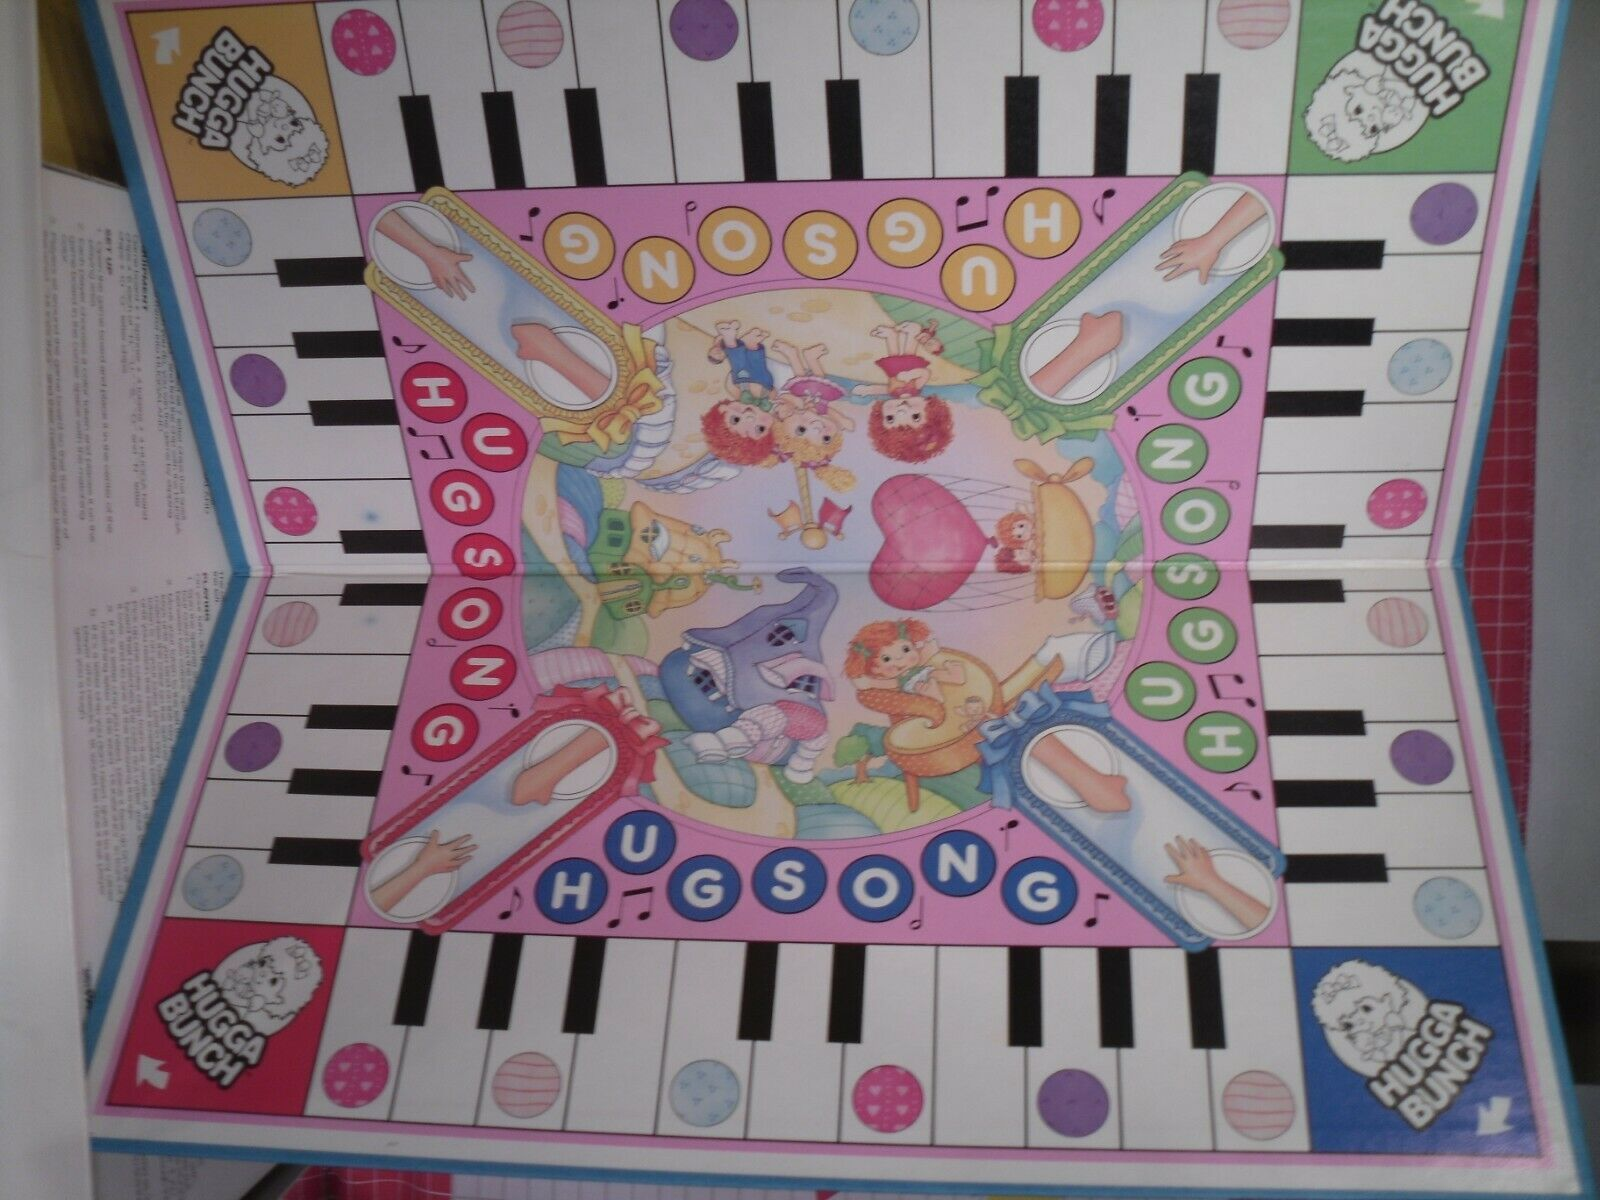 Hugga Bunch Board Game by Parker Brothers 1980s image 7